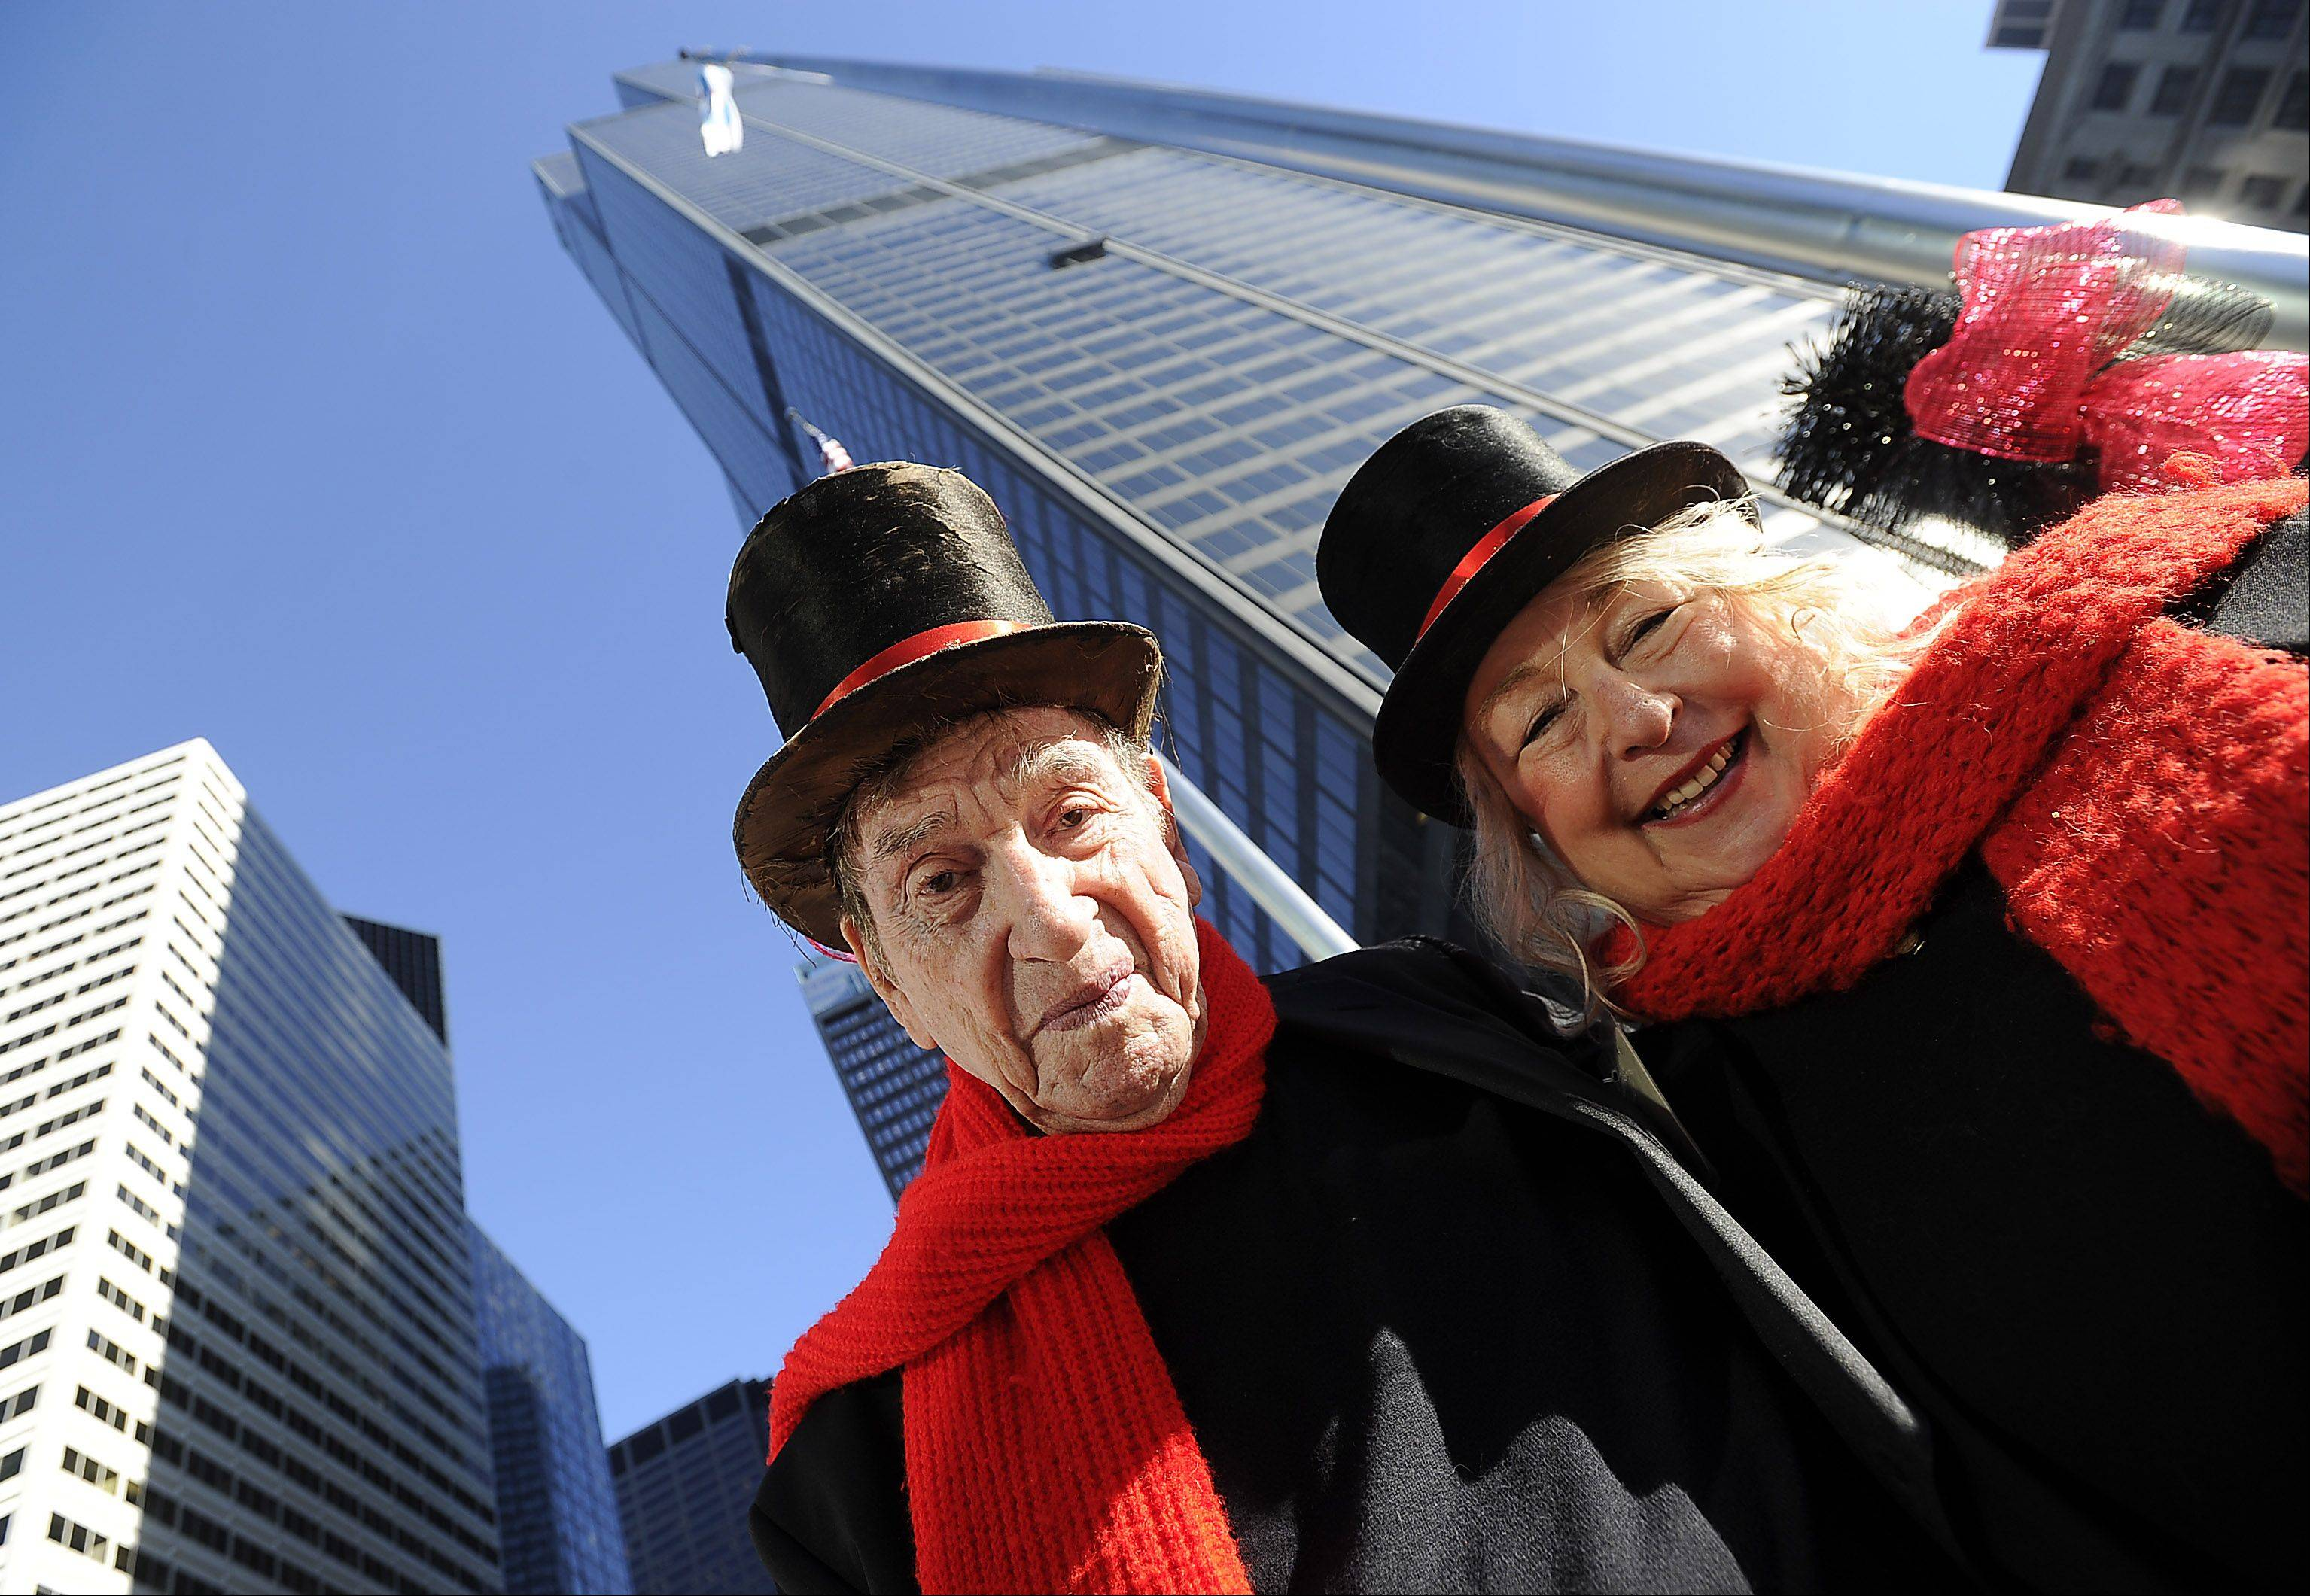 The old Sears Tower has a new name, and David and Dee Stoll of Roselle are 35 years older than the day they married on top of the tower in 1978. But their love and joy for life remain fresh, say the couple, who renewed their vows on top of the Willis Tower Tuesday.